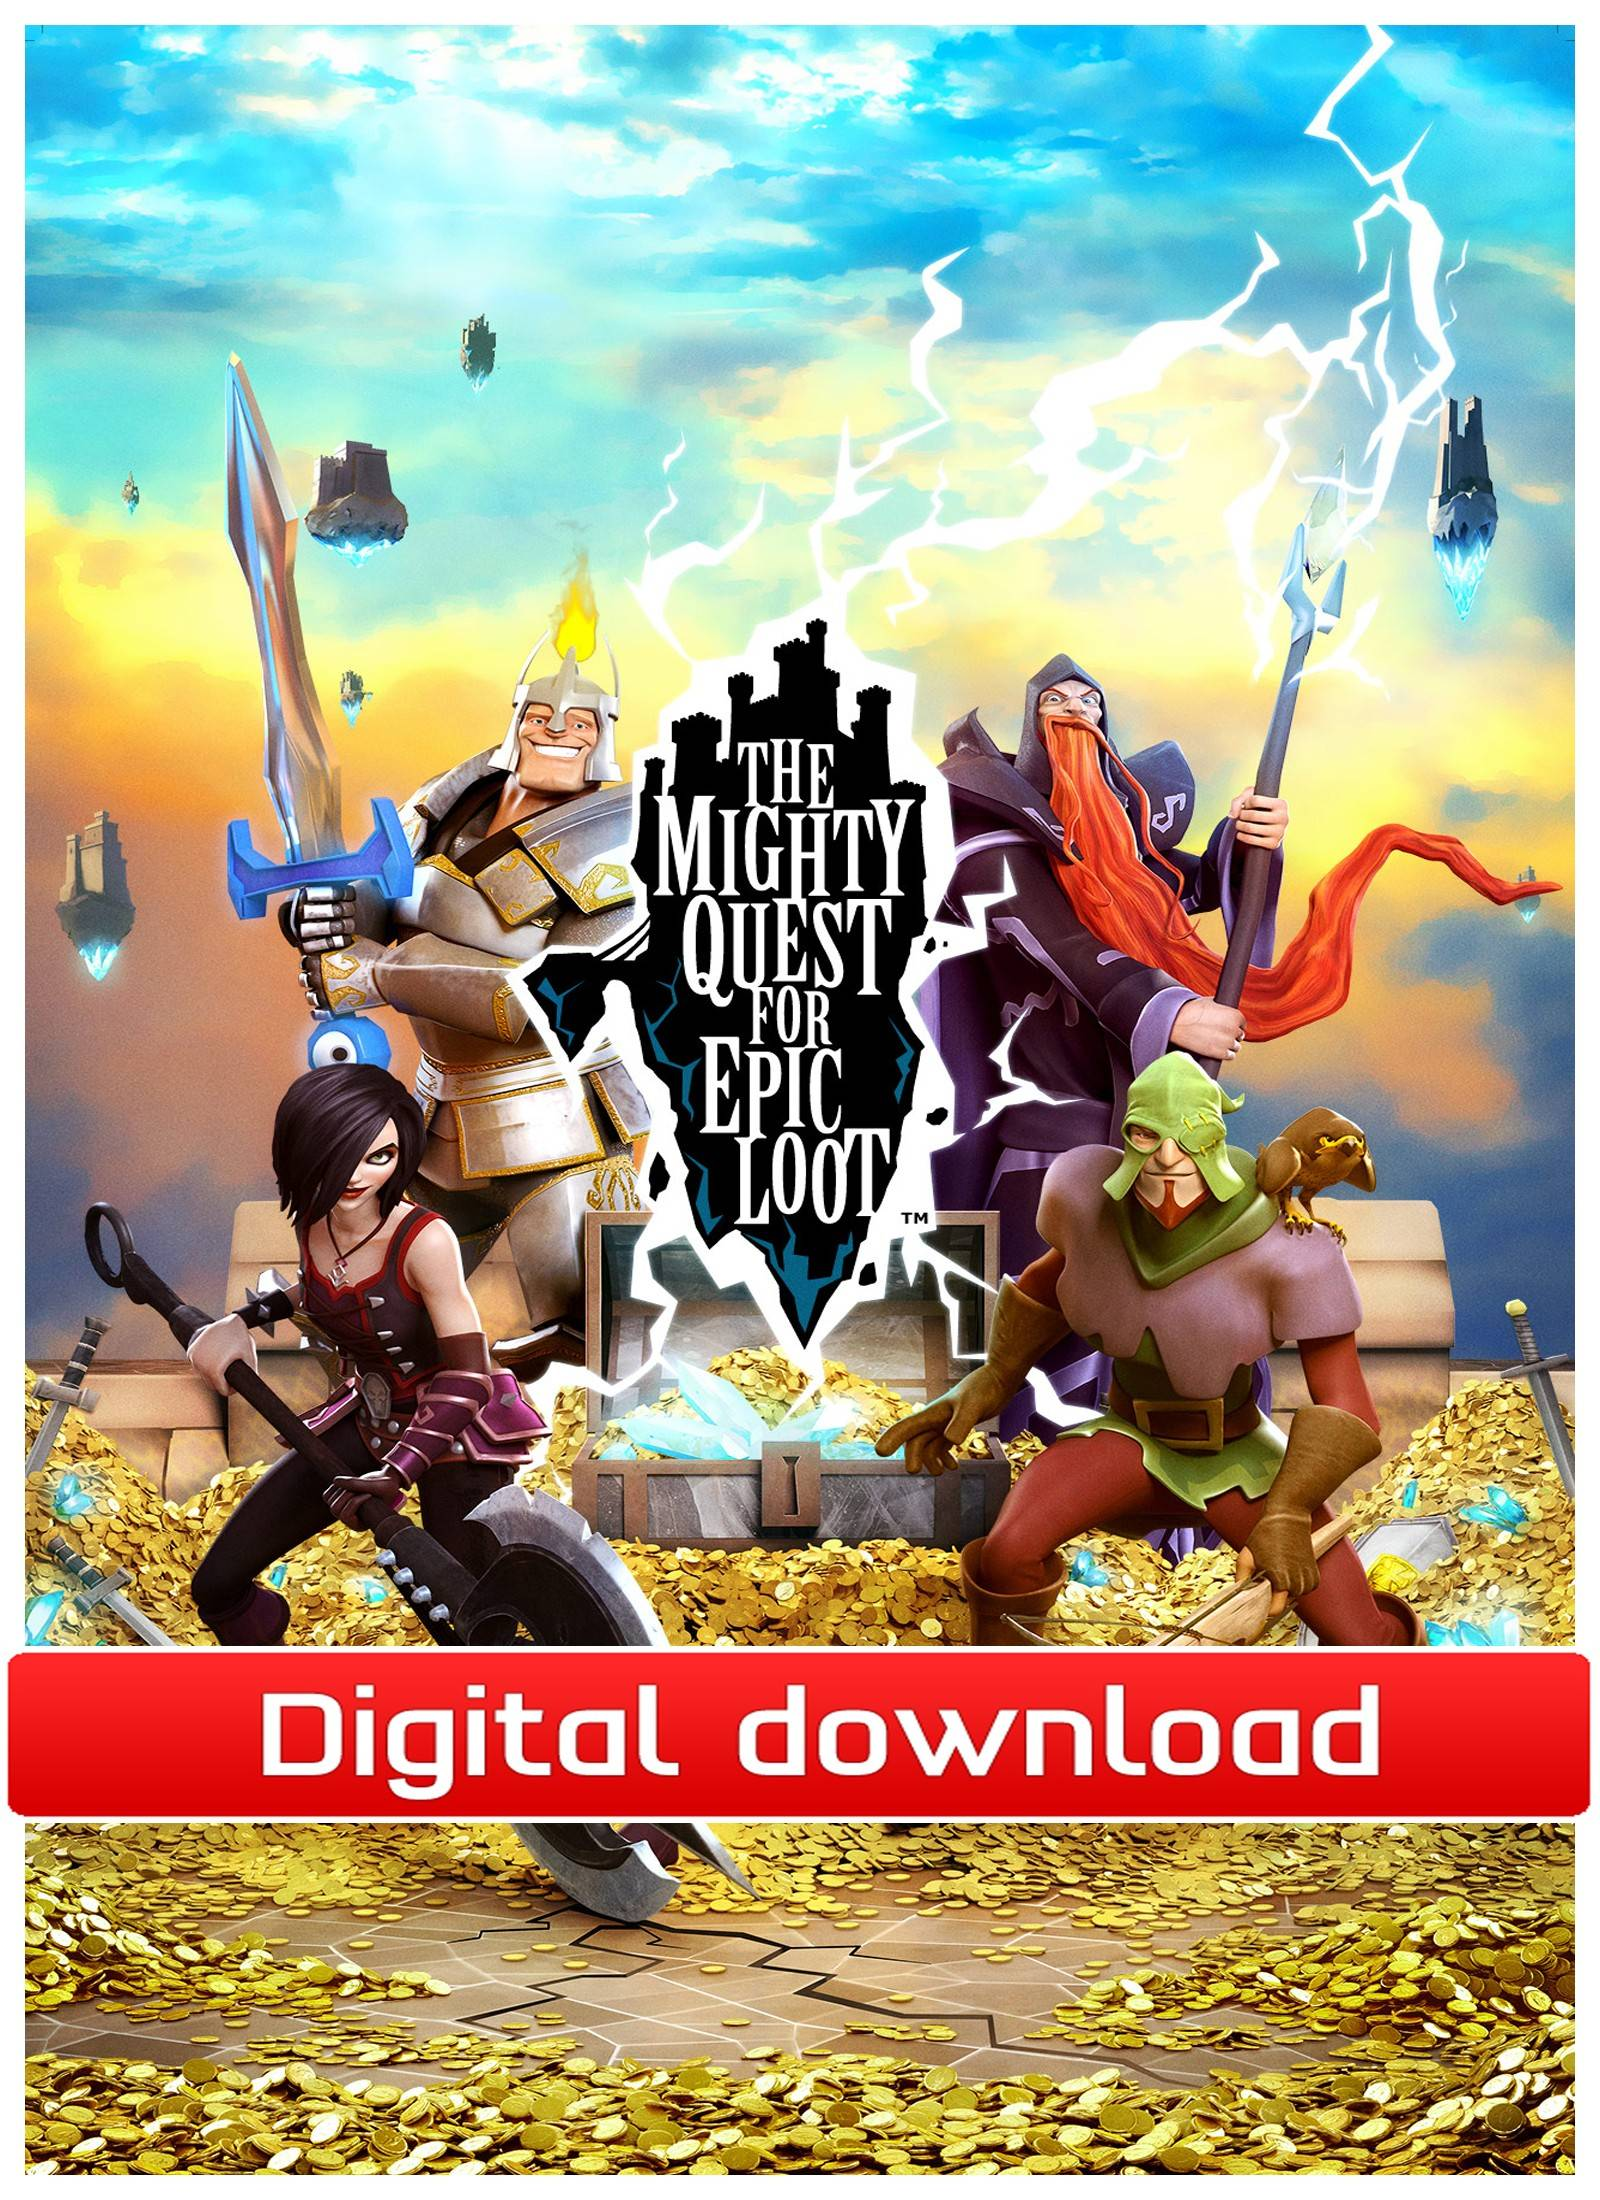 Ubisoft The Mighty Quest for Epic Loot - Ultimate Pack (Downl)